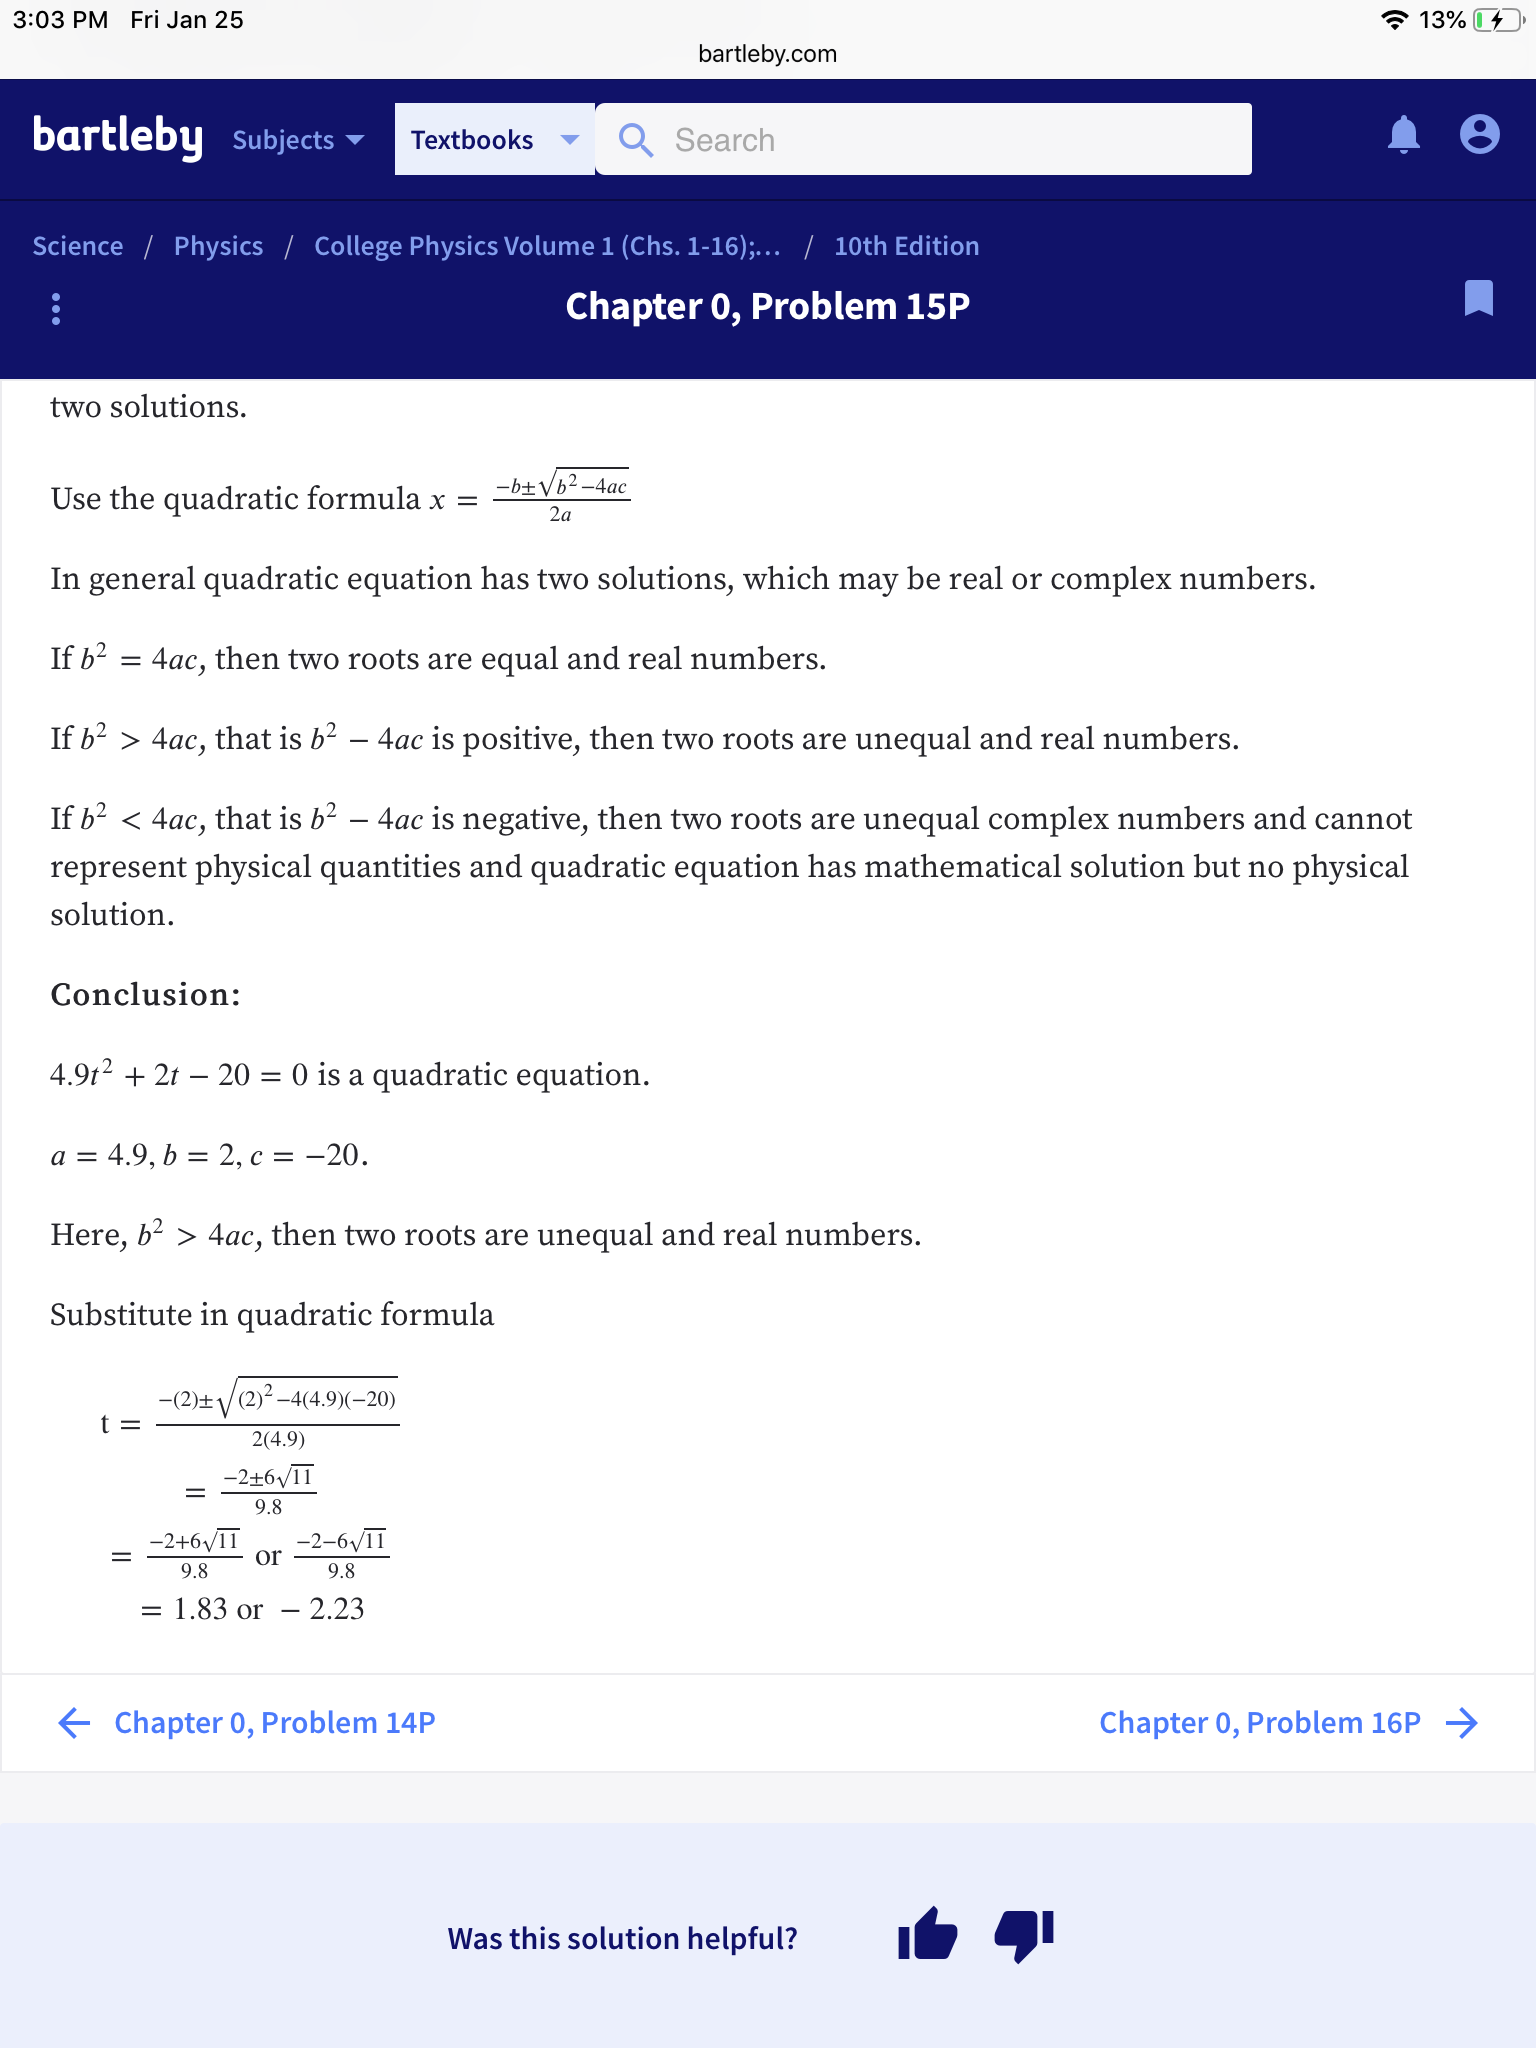 3:03 PM Fri Jan 25 139 bartleby.com bartleby subjects Search Textbooks Science Physics College Physics Volume 1 (Chs. 1-16), 10th Edition Chapter 0, Problem 15P two solutions. Use the quadratic formula x = In general quadratic equation has two solutions, which may be real or complex numbers. If b2 - 4ac, then two roots are equal and real numbers. If b2 〉 4ac, that is b2-4ac is positive, then two roots are unequal and real numbers. If b2く4ac, that is b2-4ac is negative, then two roots are unequal complex numbers and cannot represent physical quantities and quadratic equation has mathematical solution but no physical solution Conclusion: 4.9t2 + 2t -20- 0 is a quadratic equation Here, b- > 4ac, then two roots are unequal and real numbers. Substitute in quadratic formula 2(4.9) 9.8 -2+6/1-2-6/11 Or 9.8 9.8 1.83 or - 2.23 Chapter 0, Problem 14P Chapter 0, Problem 16P Was this solution helpful?